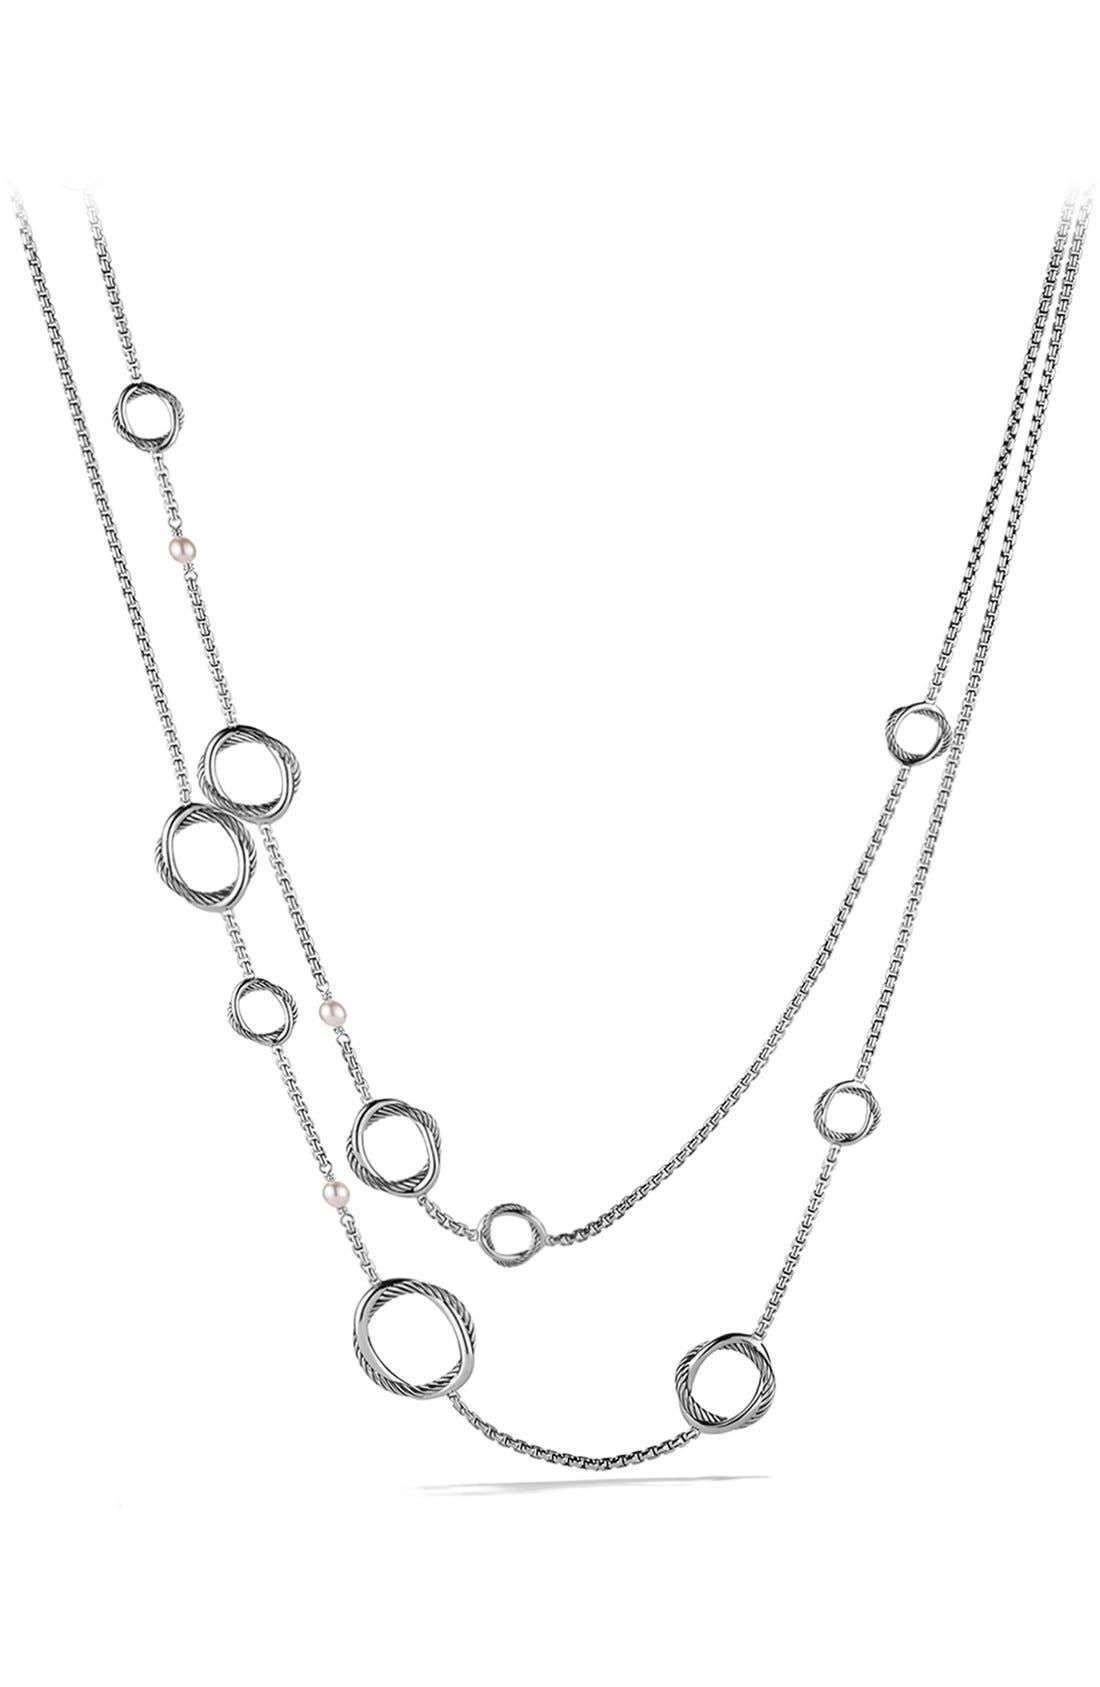 David Yurman 'Infinity' Necklace with Pearls